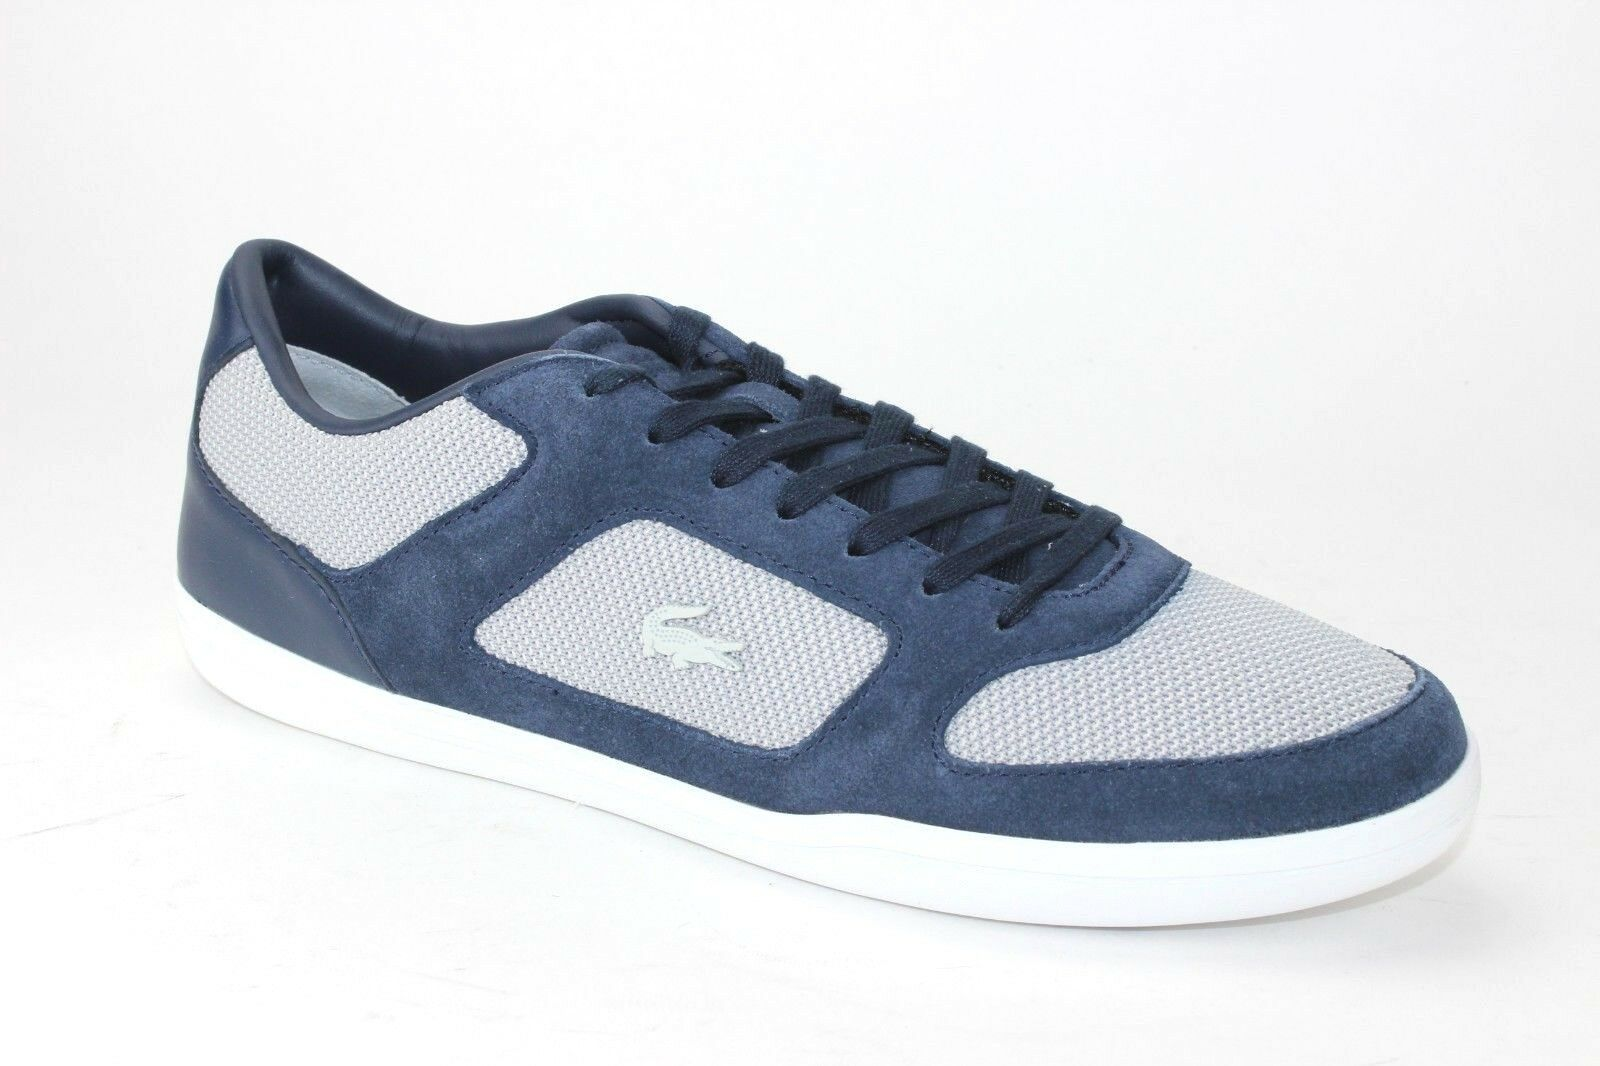 Lacoste Court-Minimal 217 1 Cam Mens bluee Suede Sneakers shoes 9.5